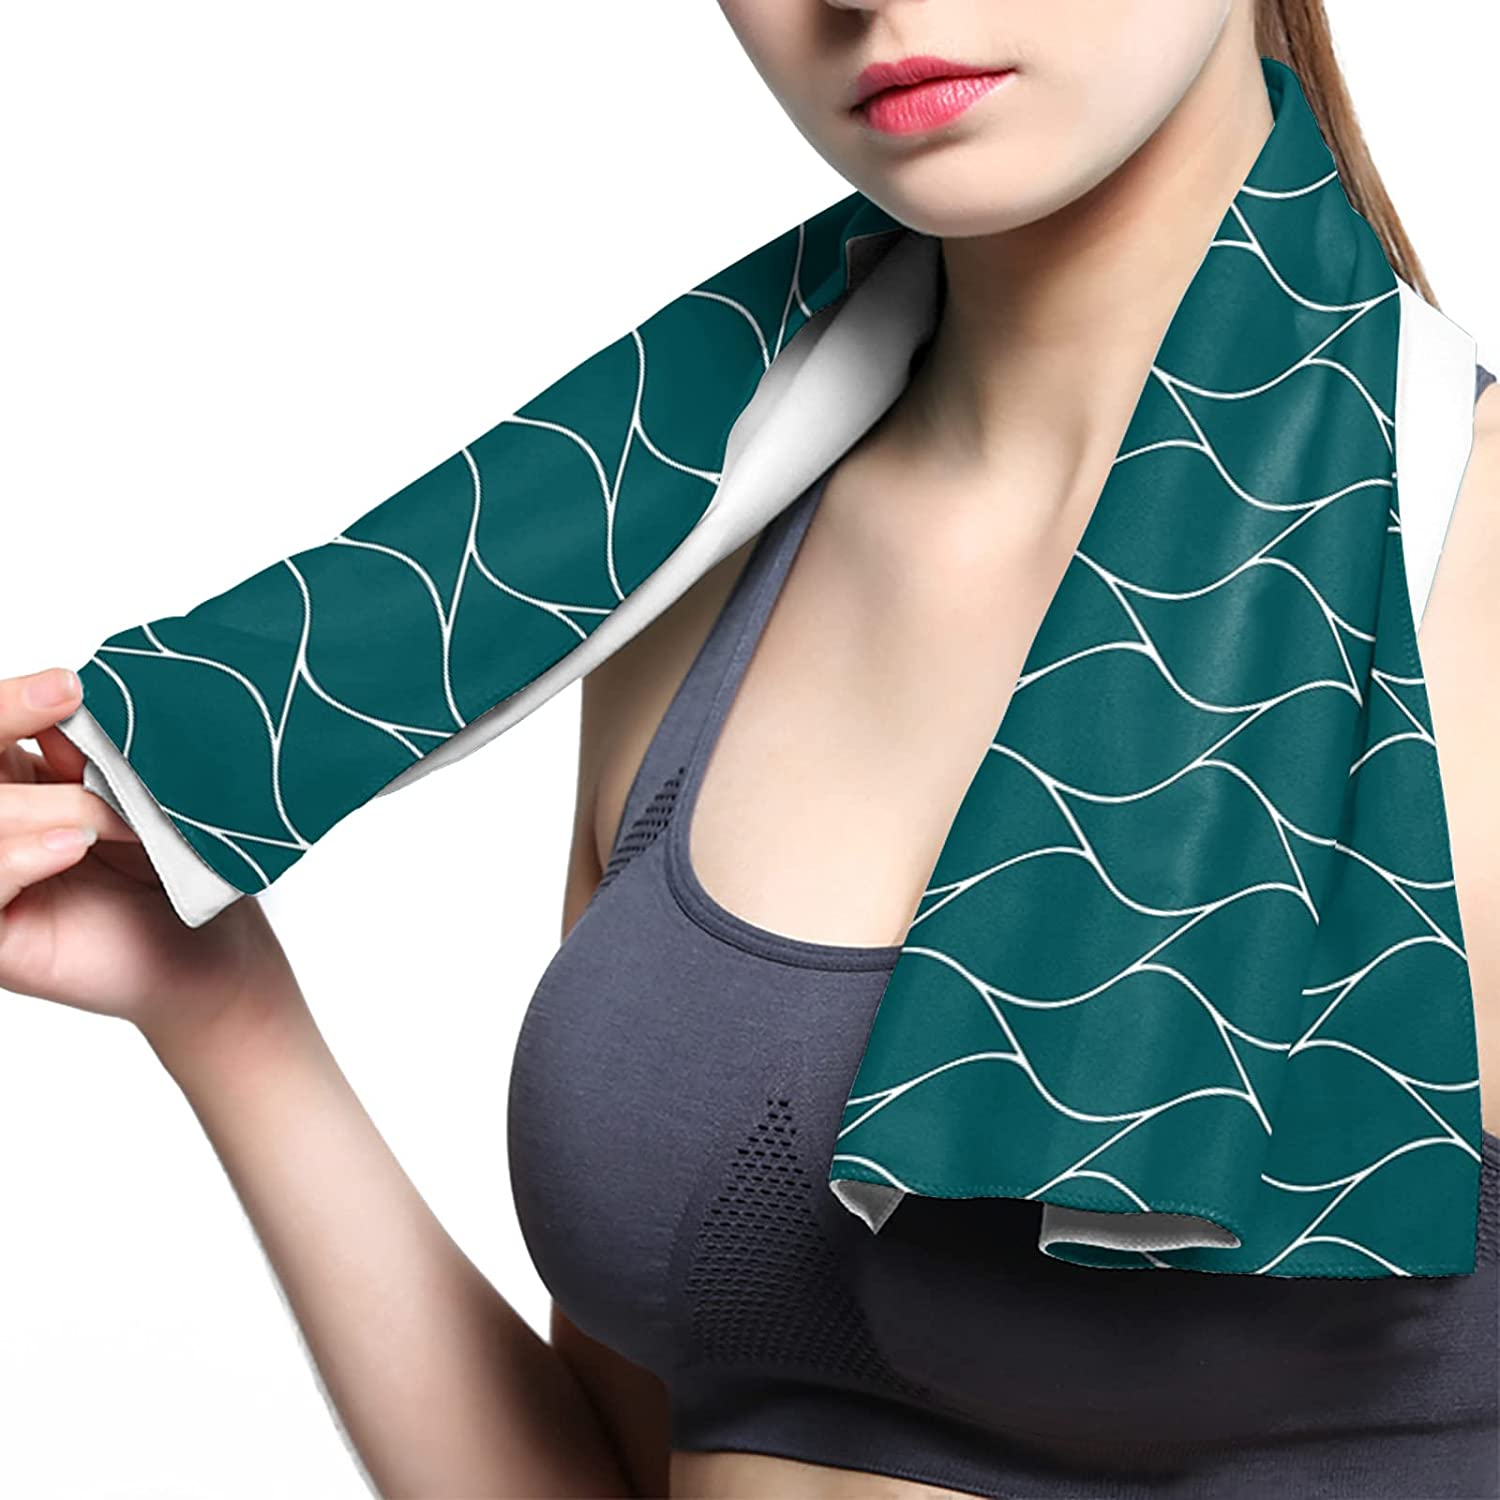 ArneCase Cooling Towel Breathable Turqu Towels Microfiber Chilly Max 87% OFF Super sale period limited